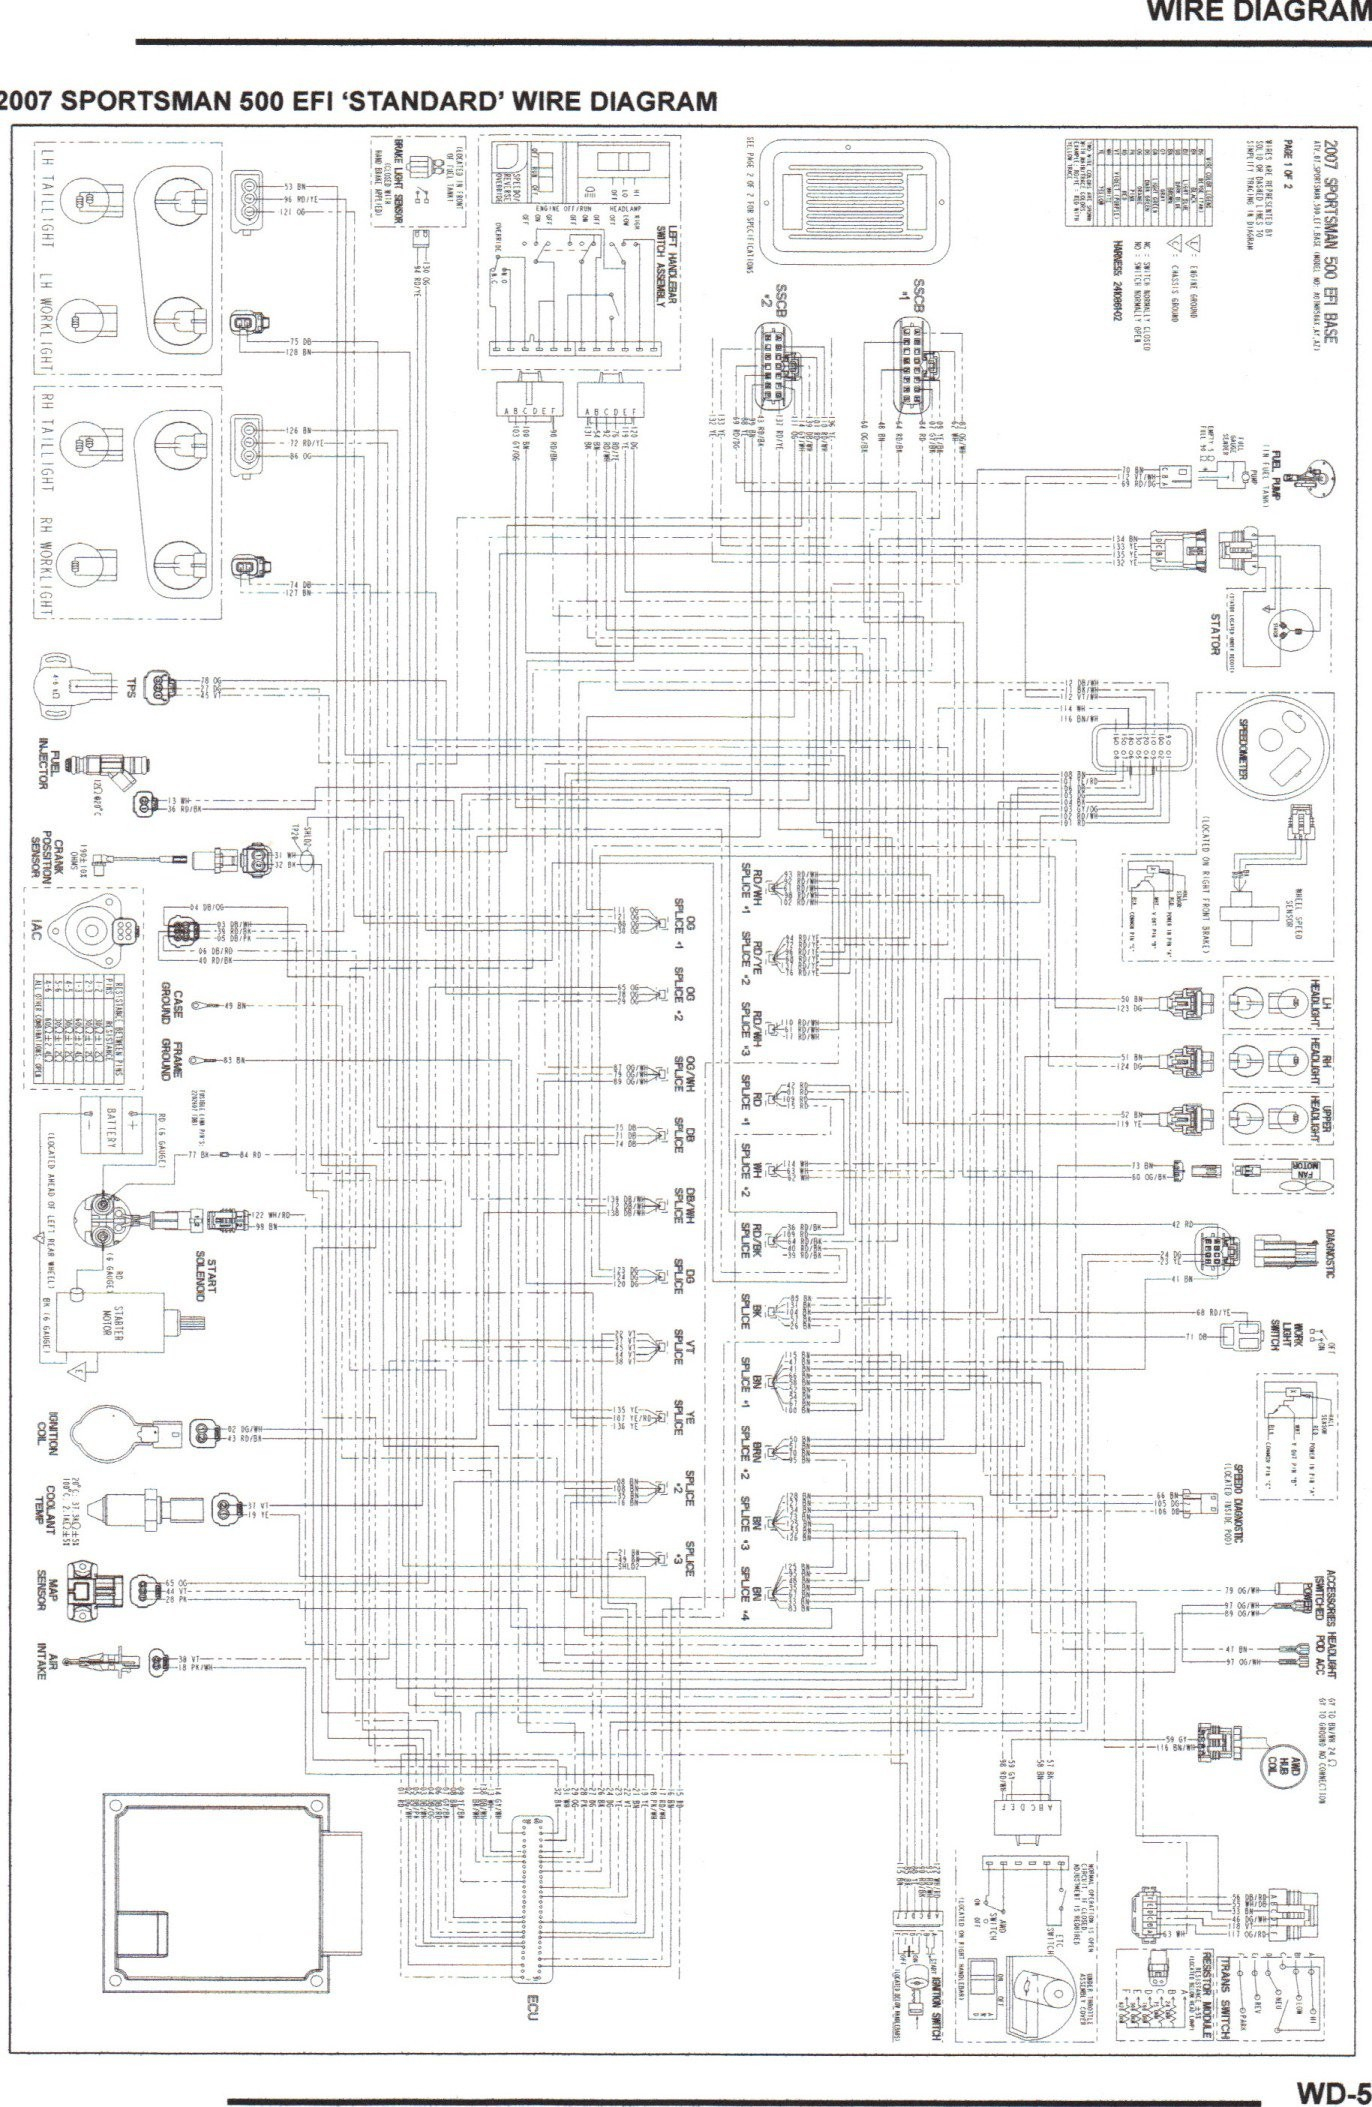 2005 Polaris Sportsman 700 Wiring Diagram Just Another Voltage Regulator The Structural U2022 Rh Sadrazp Com 500 600